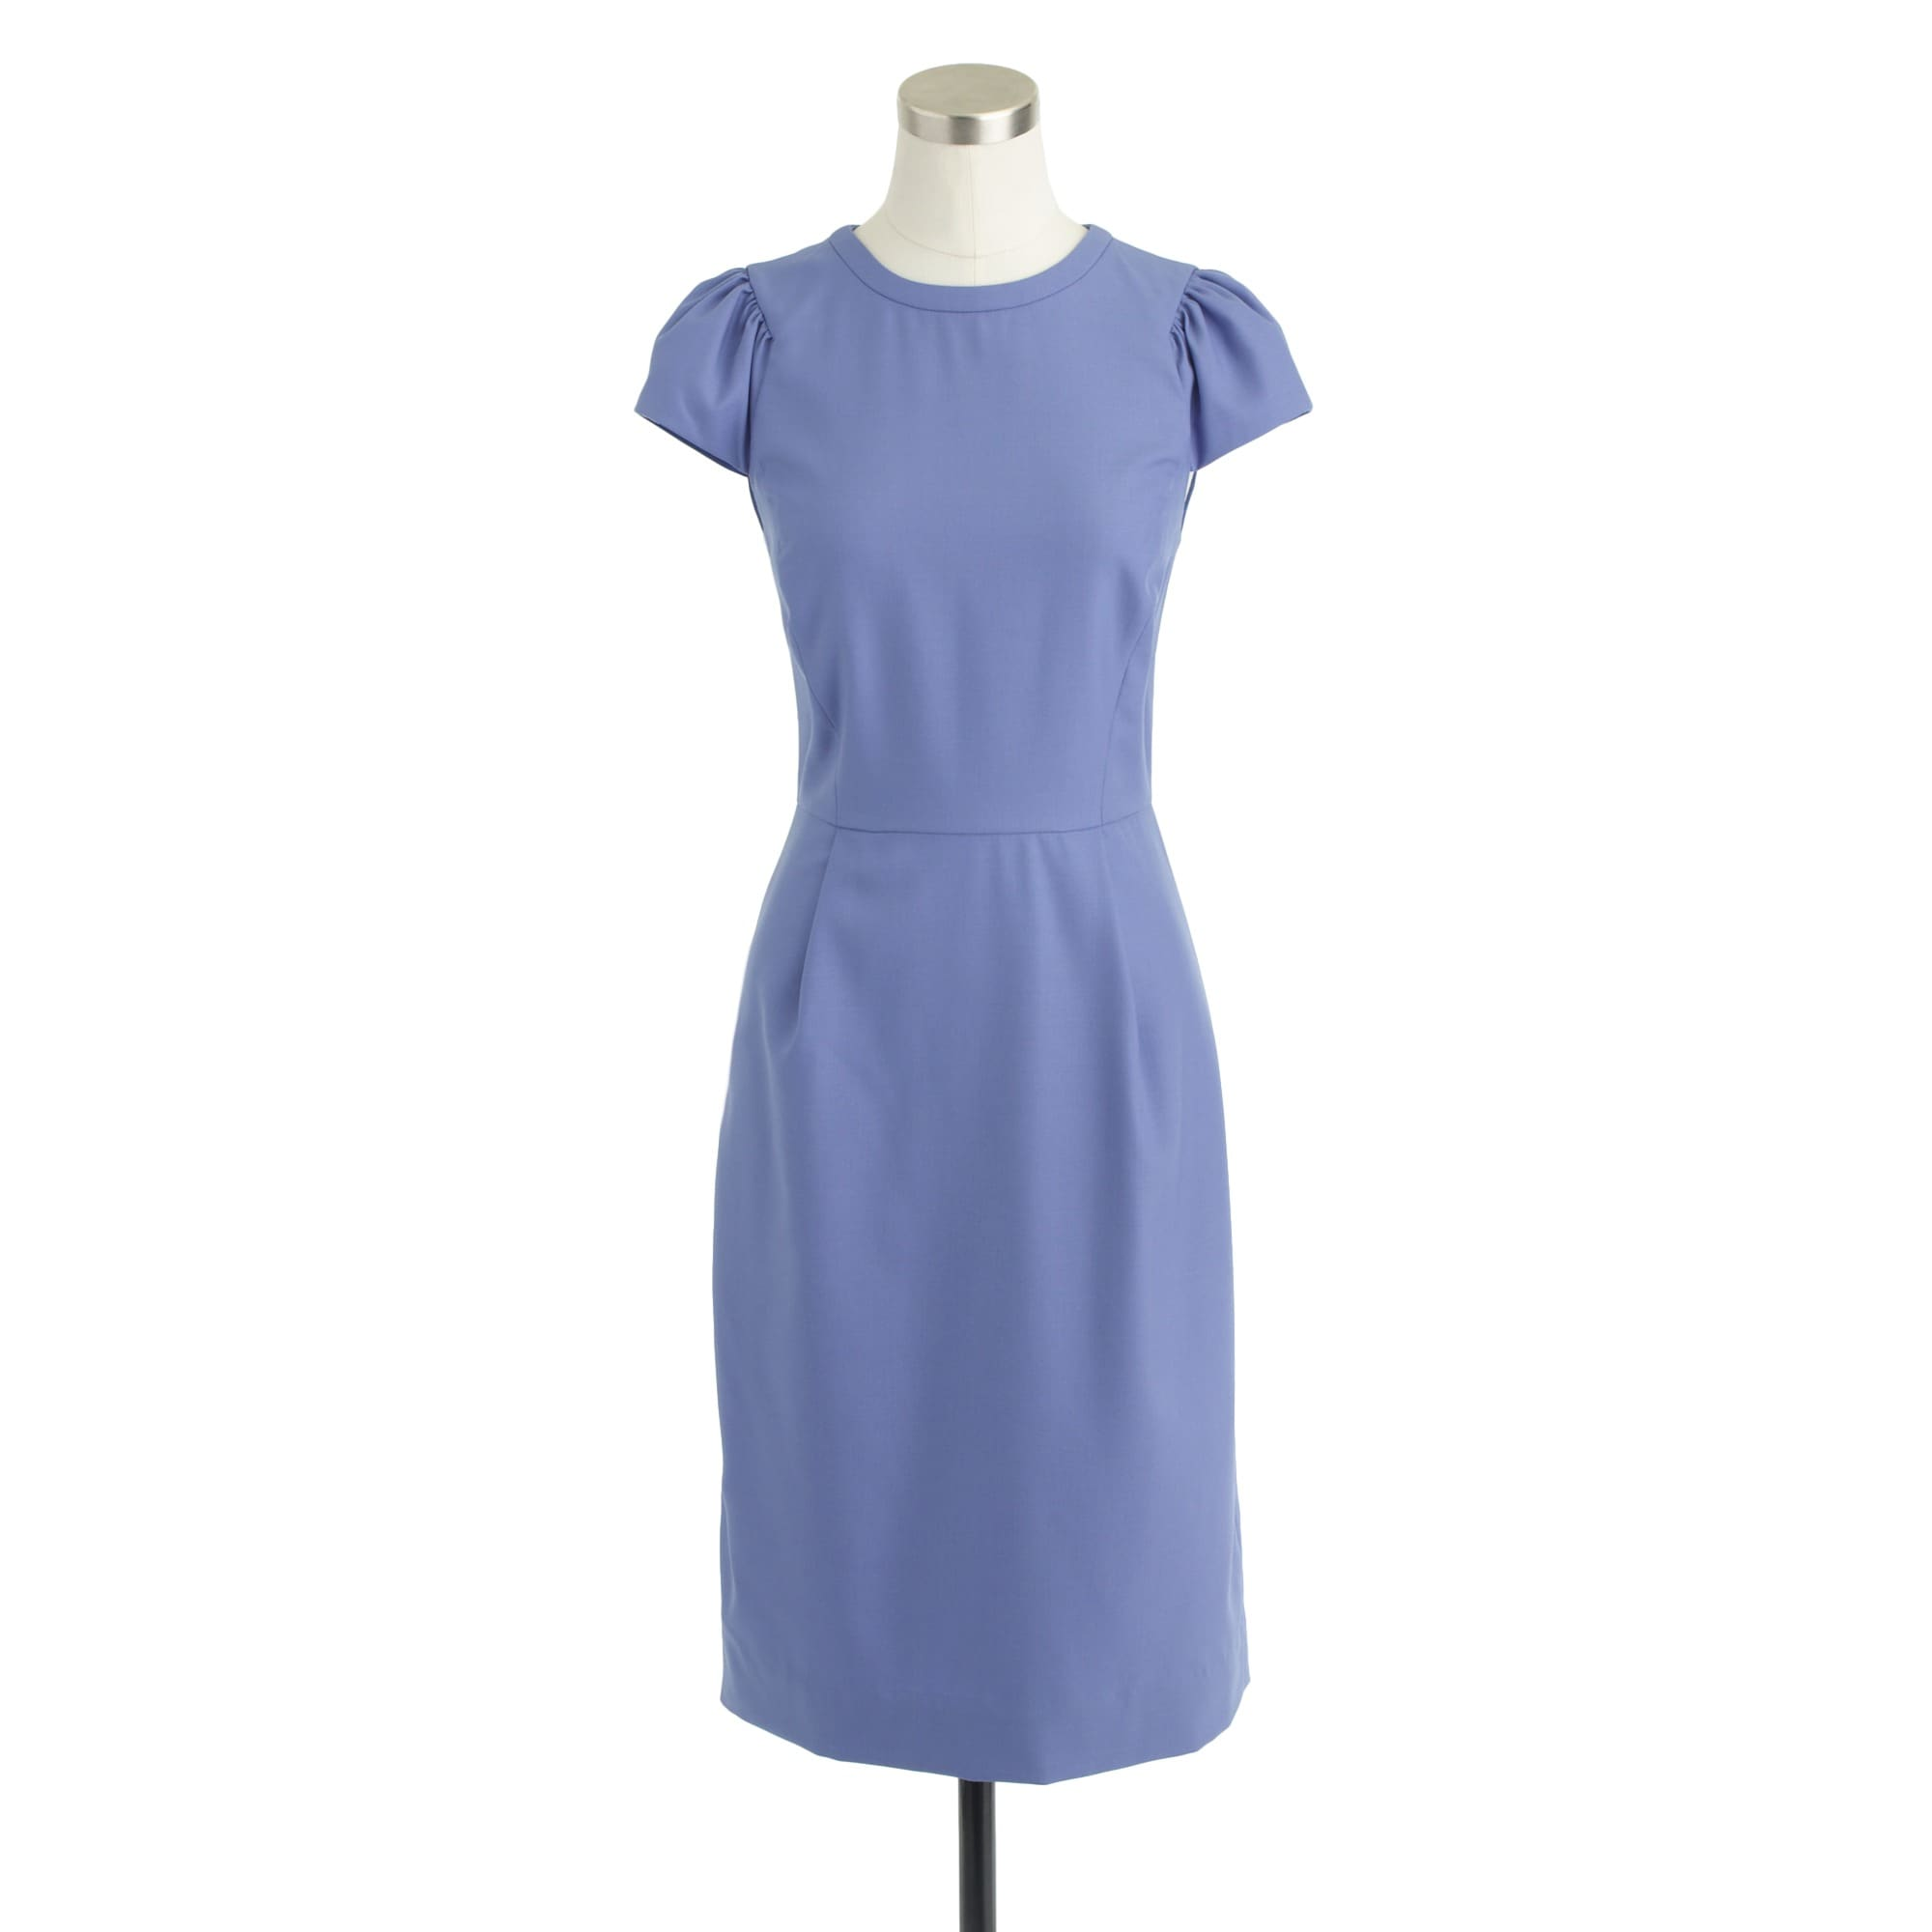 Puff-sleeve dress in Super 120s